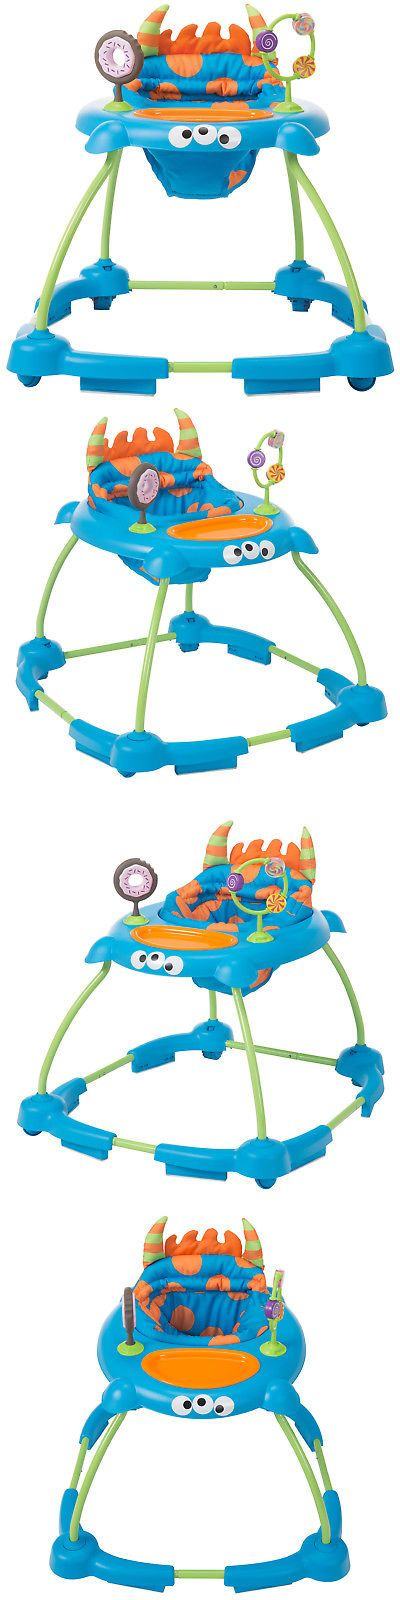 3325a6cd1d87 Cosco Simple Steps Interactive Baby Walker